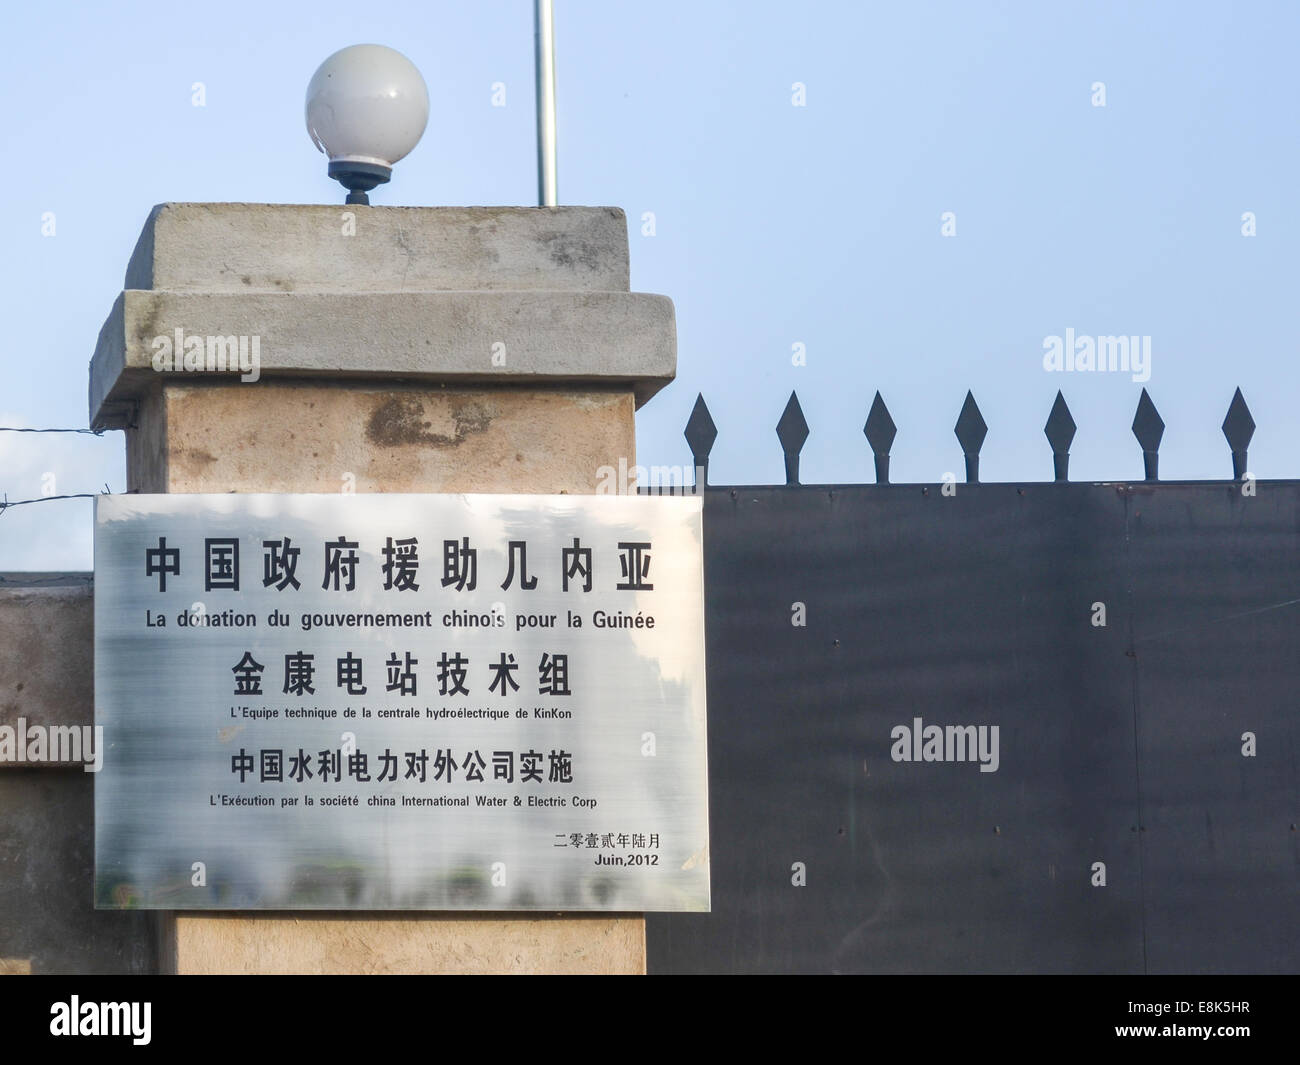 Chinese sign at the Kinkon hydro power plant near Pita, Fouta Djalon, Guinea. Reading 'Gift of the Chinese government - Stock Image